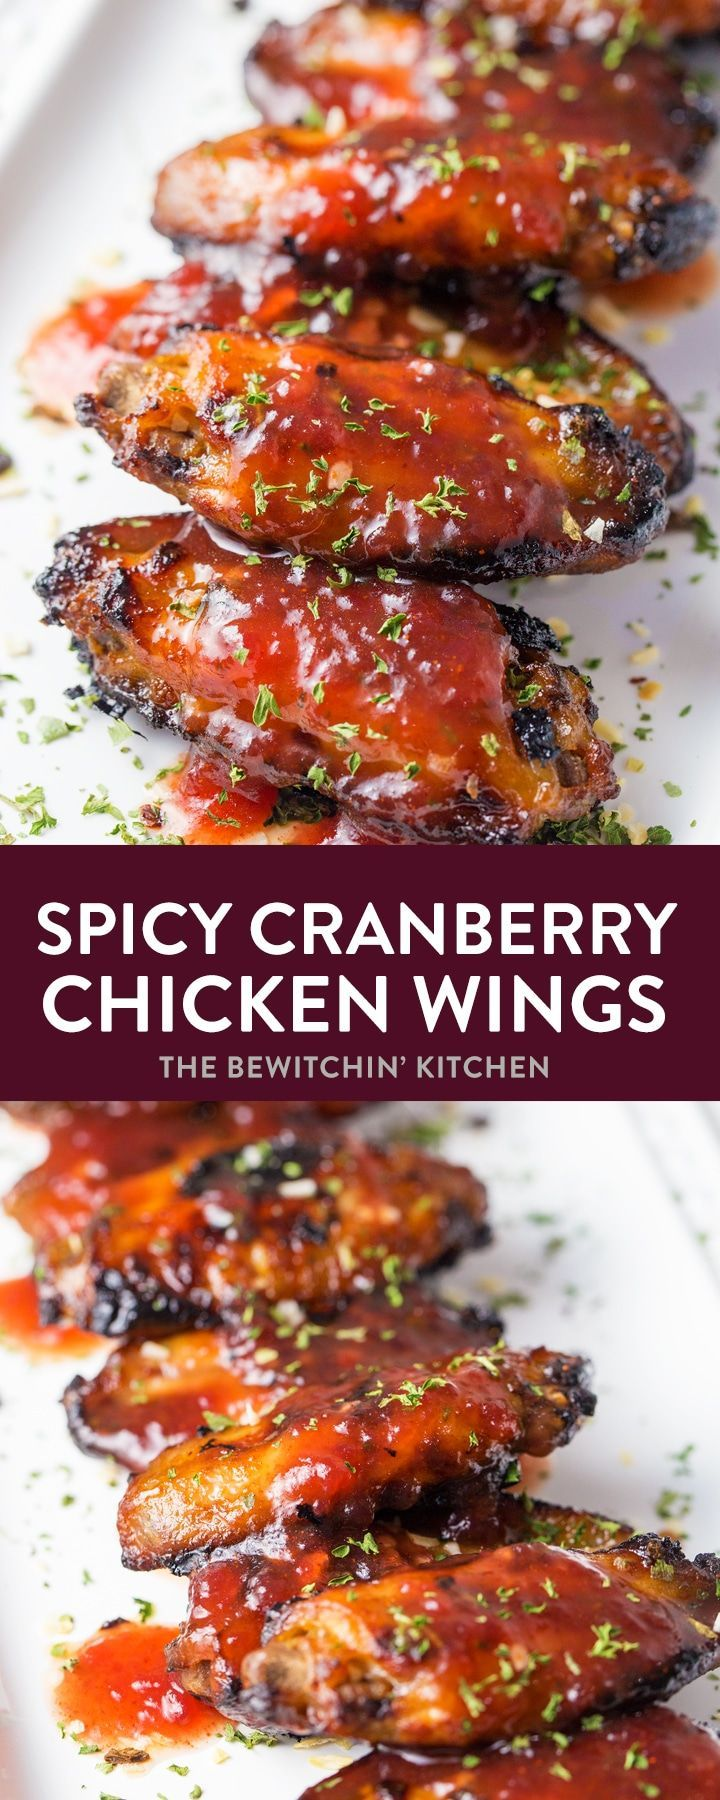 Spicy Cranberry Chicken Wings - Hot wings with a touch of cayenne spice!  #thebewitchinkitchen